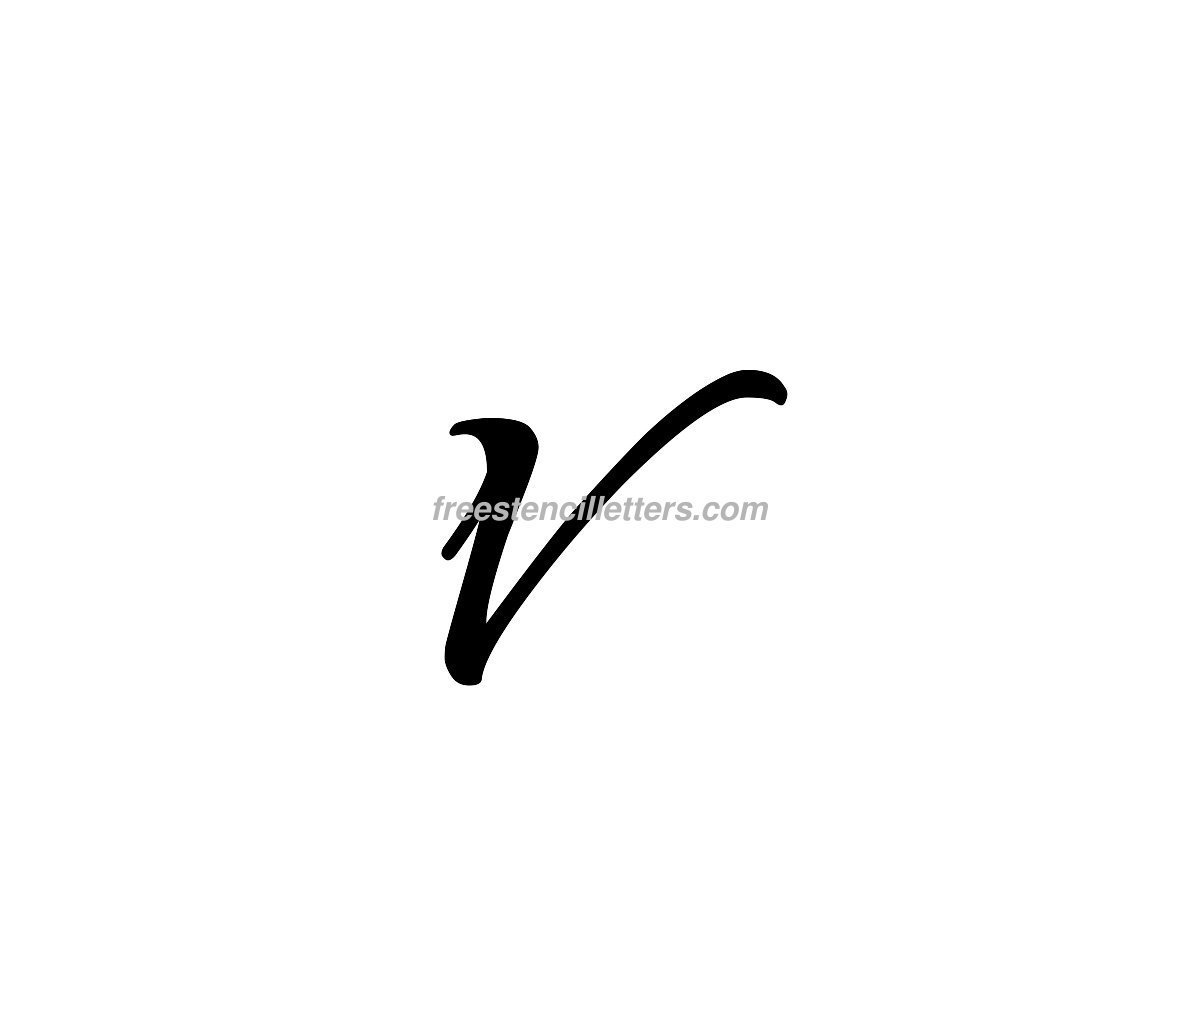 Print small v letter stencil free stencil letters download print small v letter stencil to print and cut out altavistaventures Images